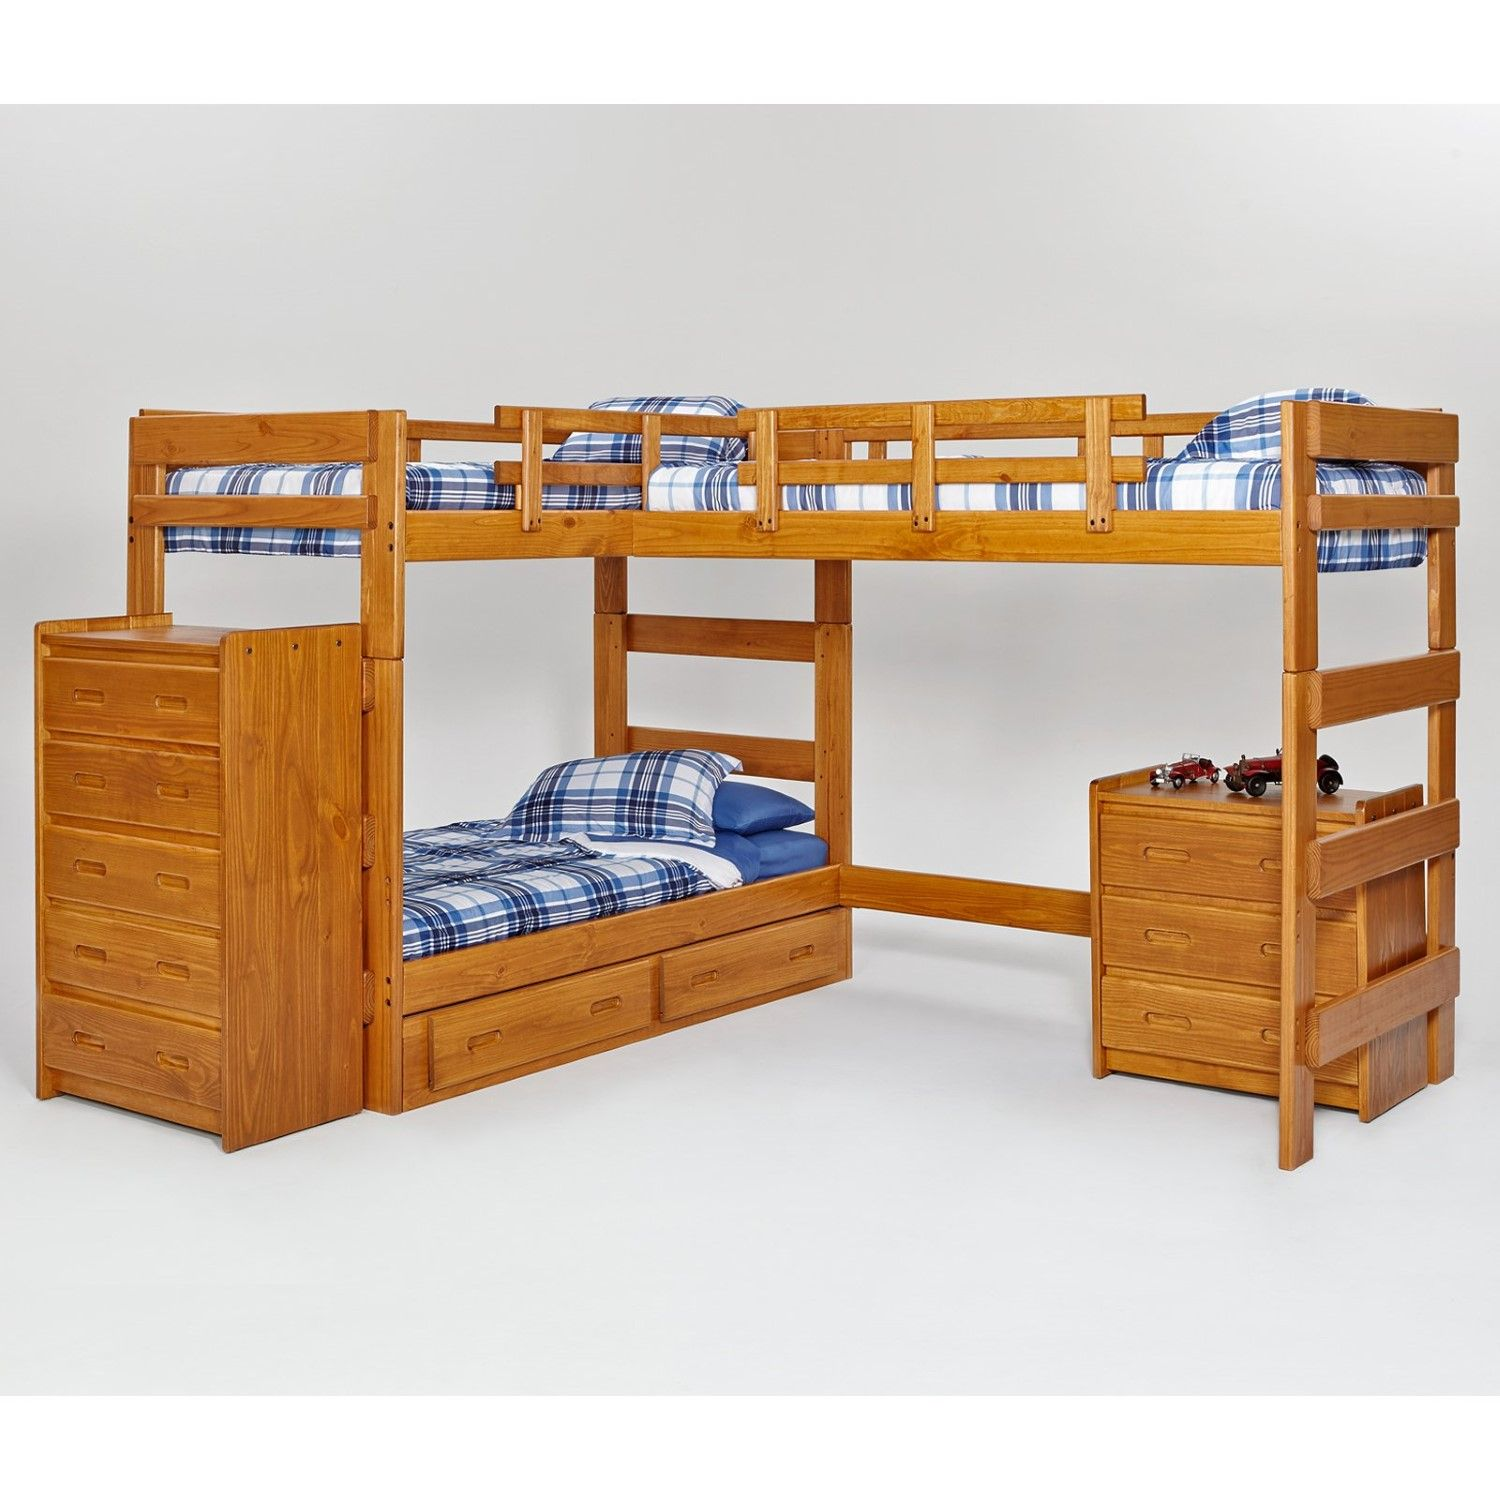 Giving you sleeping space for three, the Woodcrest